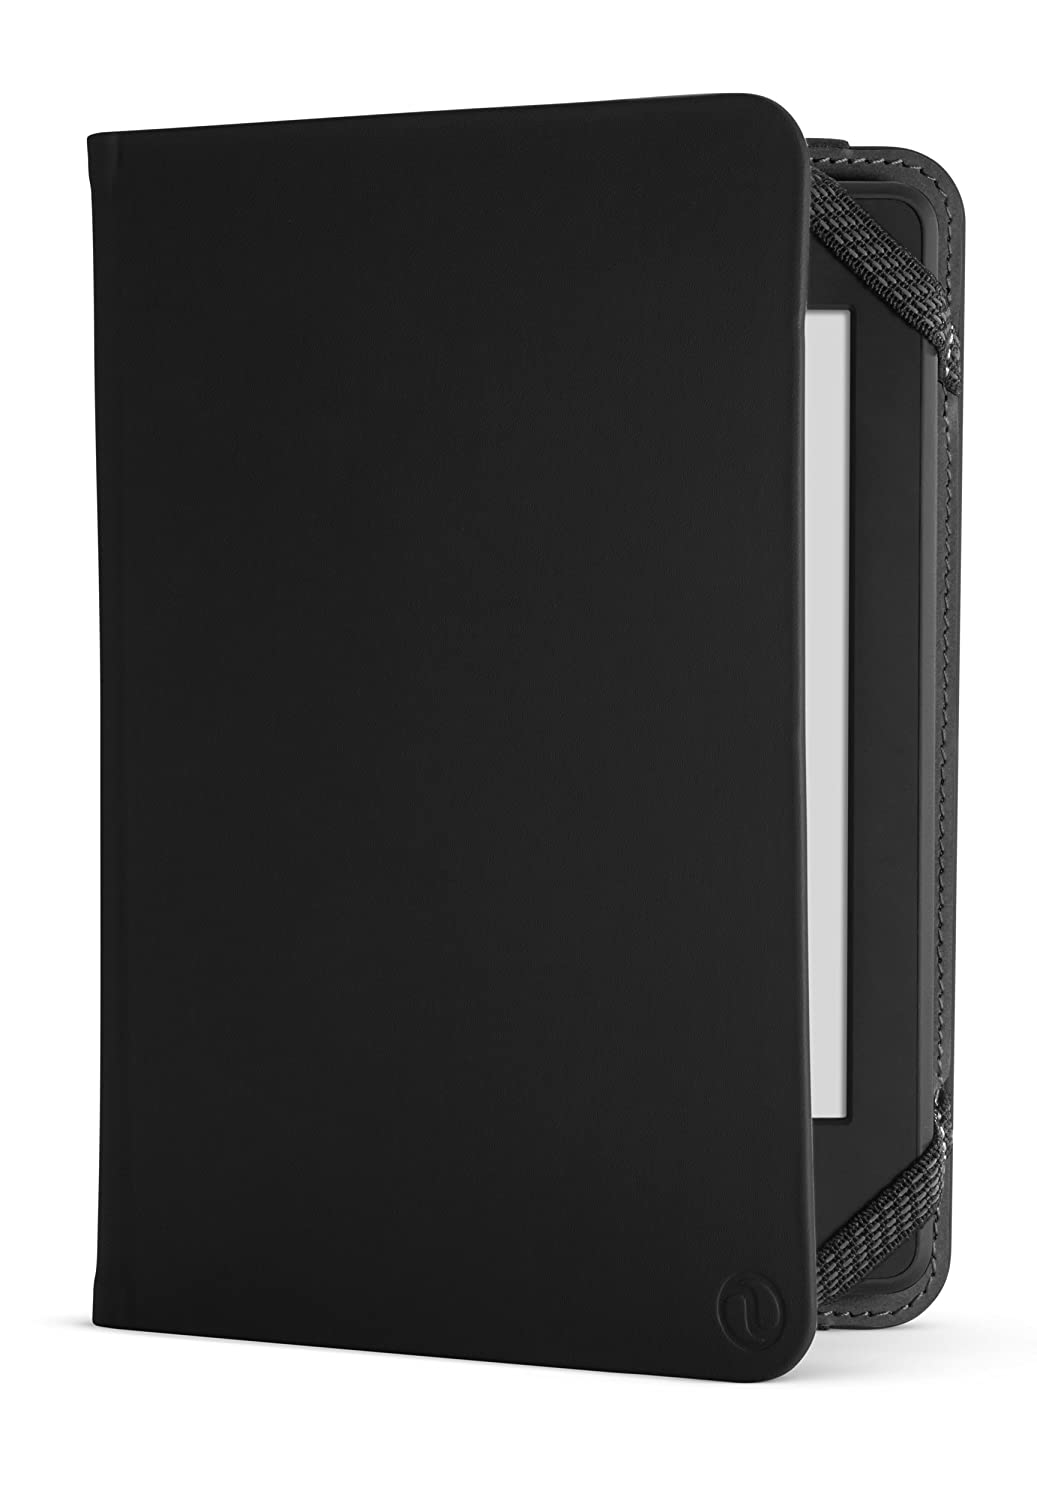 NuPro Amazon Kindle Paperwhite Case - Lightweight Durable Slim Folio Cover (fits Kindle and Kindle Paperwhite), Black